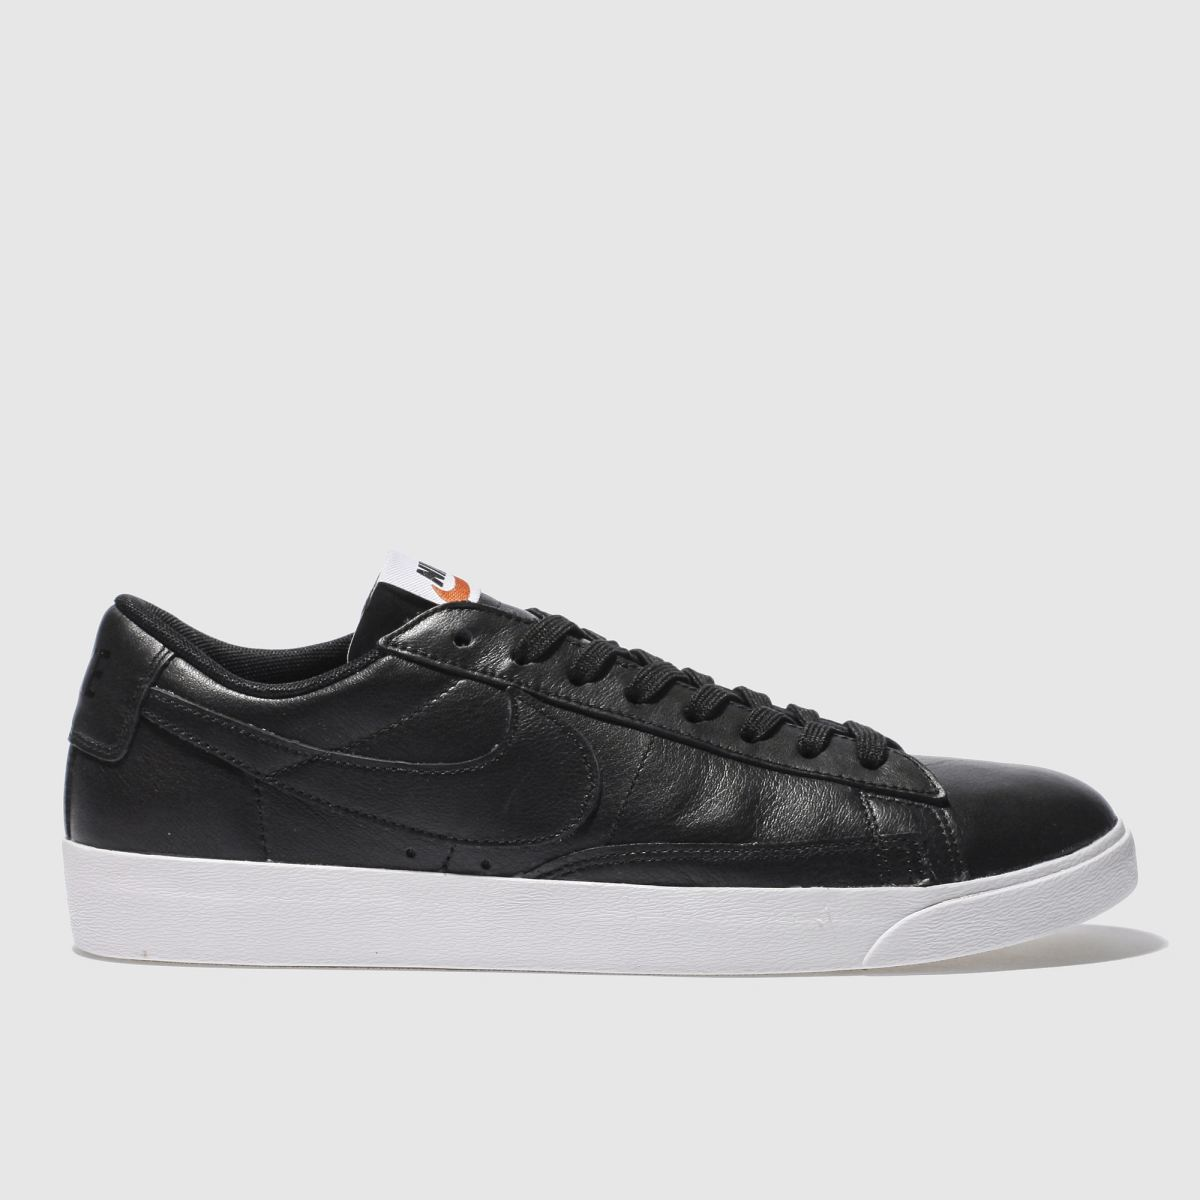 nike black & white blazer low leather trainers